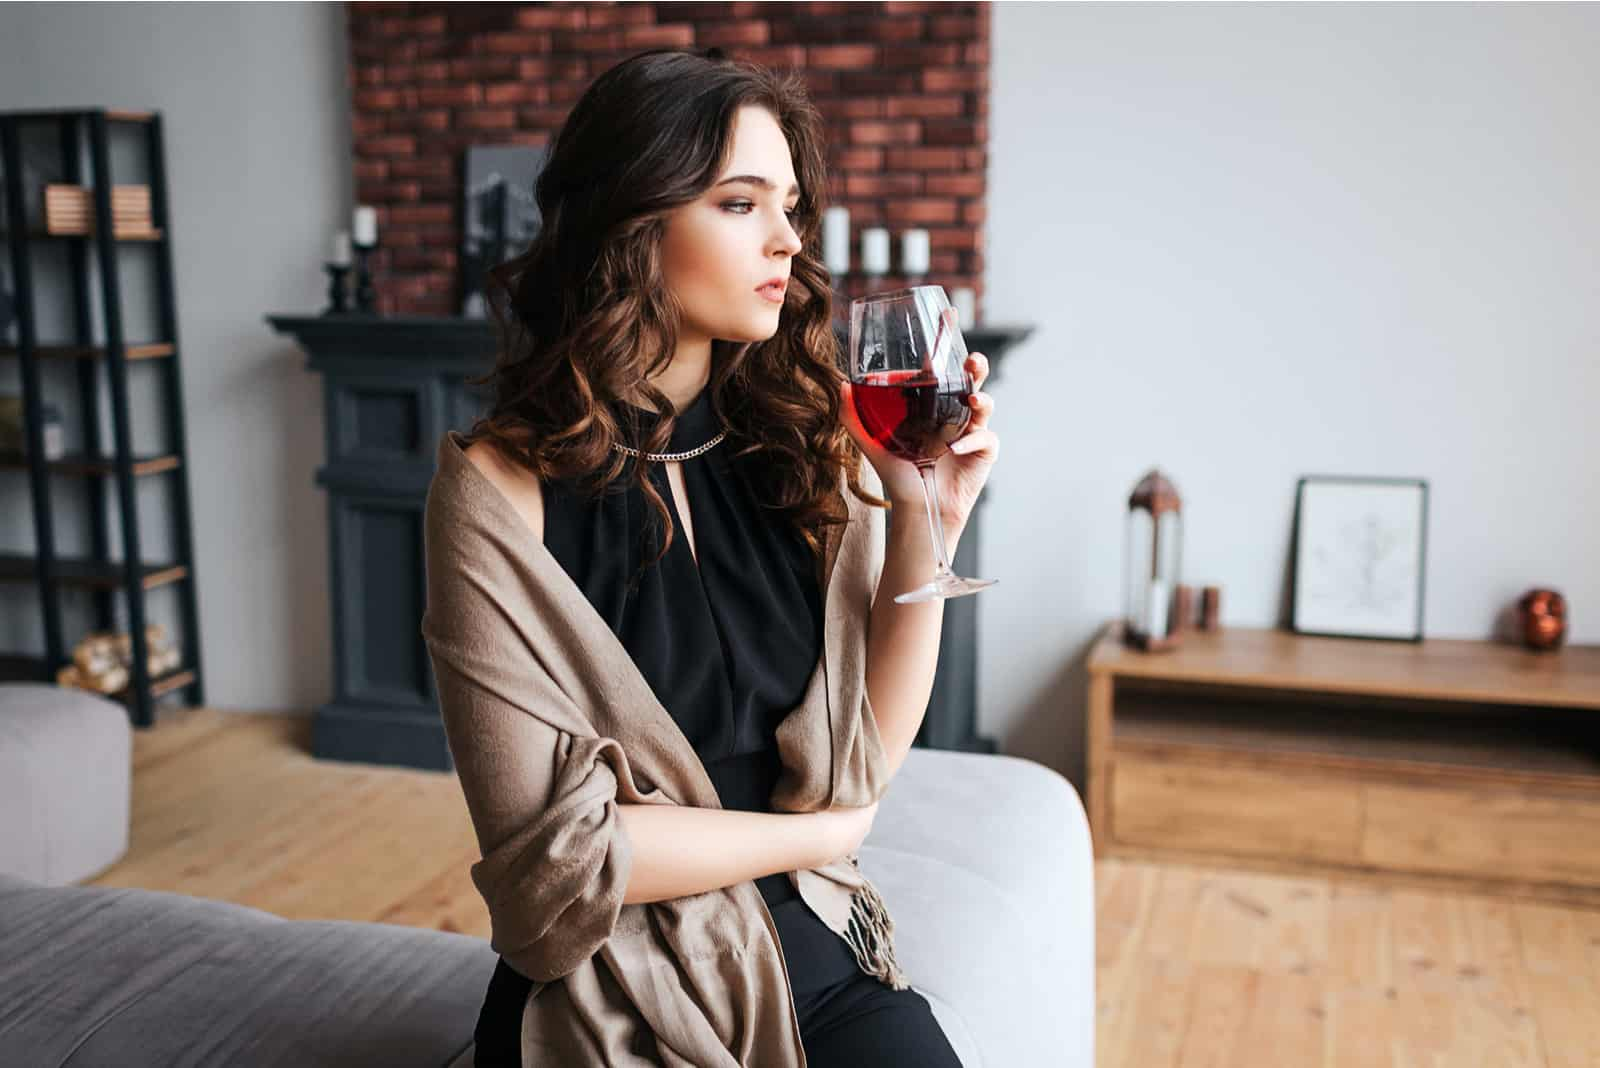 a woman with long black hair leaning against the couch drinks wine